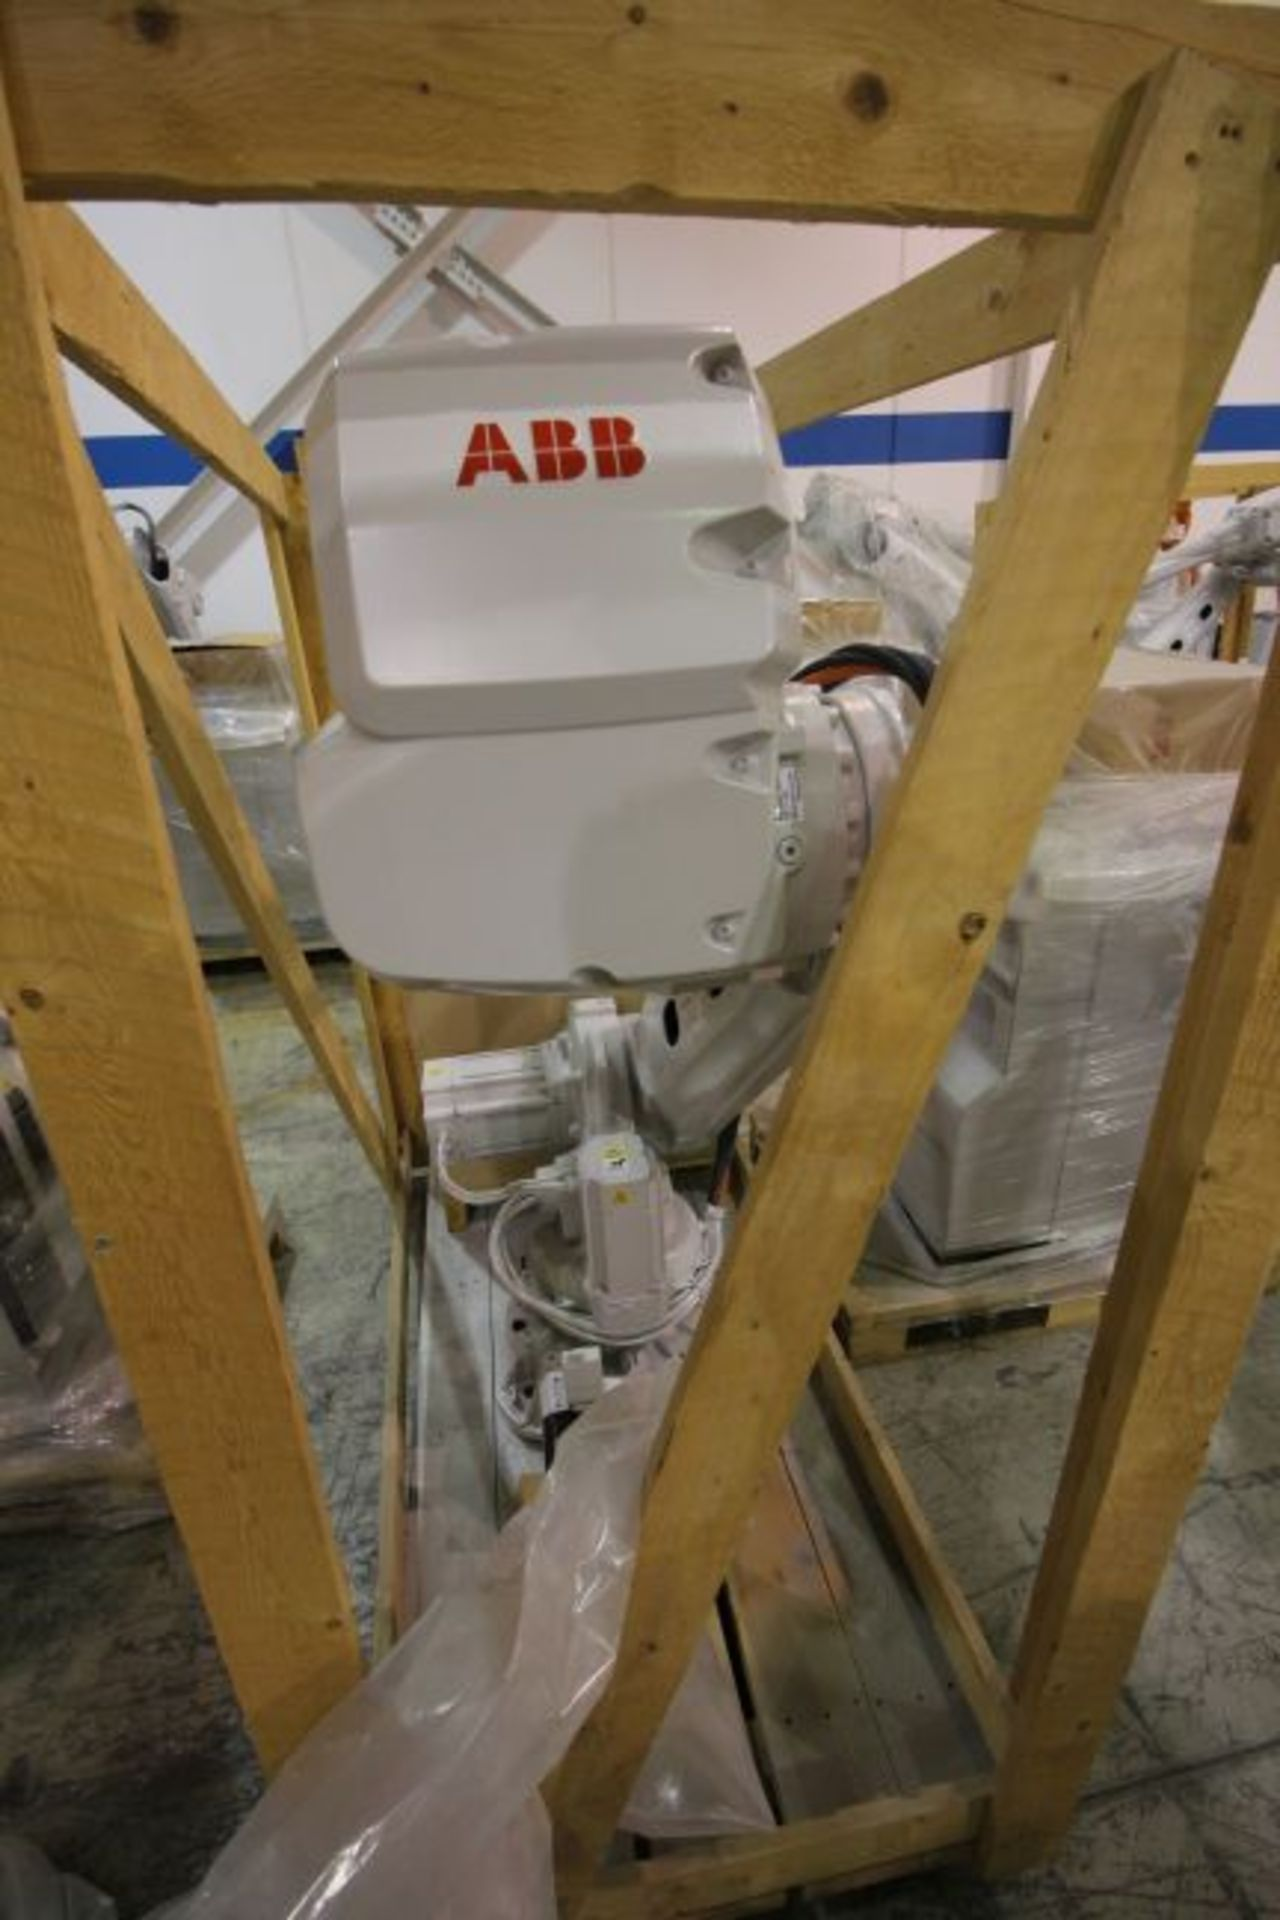 (NEW) ABB ROBOT IRB 4600 2.55/40KG WITH IRC5 CONTROLS, YEAR 2014, SN 101897 TEACH PENDANT& CABLES - Image 4 of 11